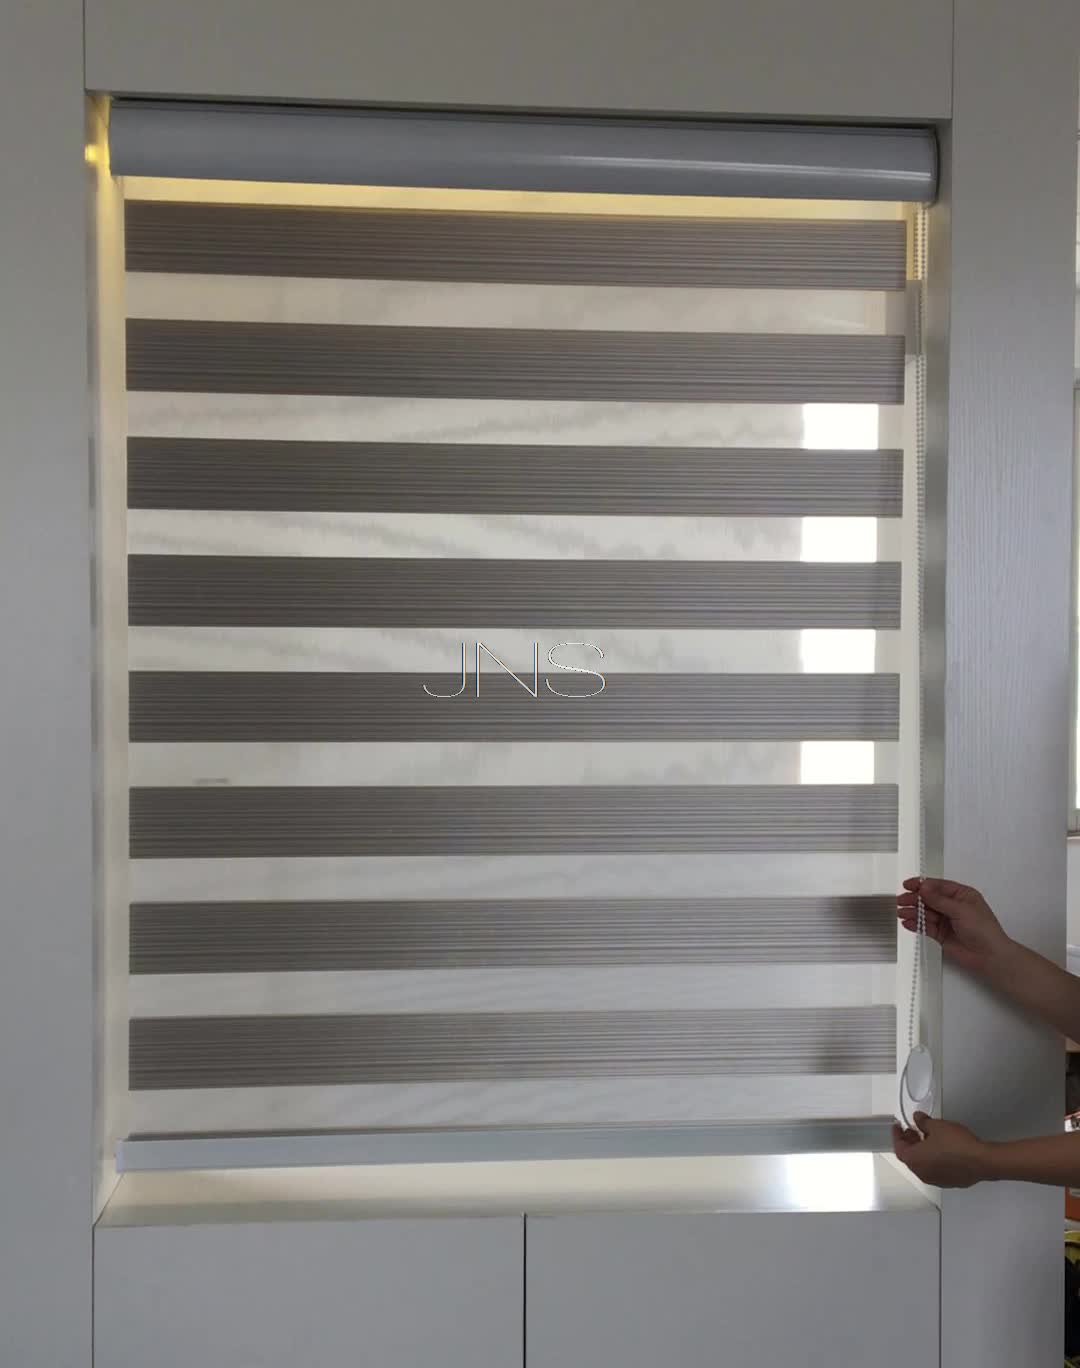 Stardeco home decor day and night shadow zebra blinds fabric window blind